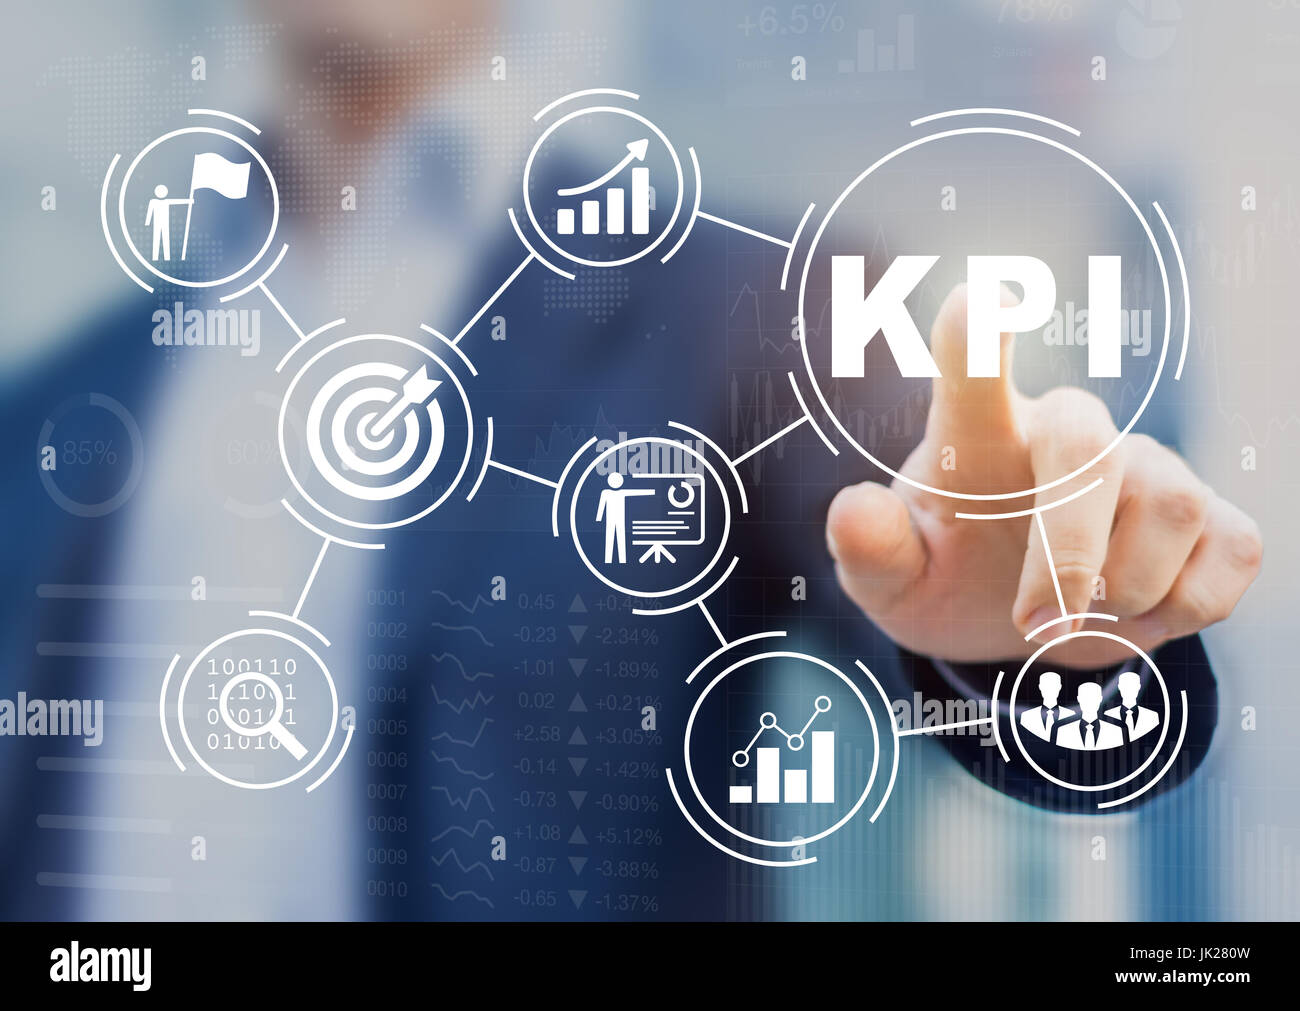 the use of key performance indicators Enter now and discover the product management kpis to use and ensure you build the most efficient team to  while the key performance indicators vary from .